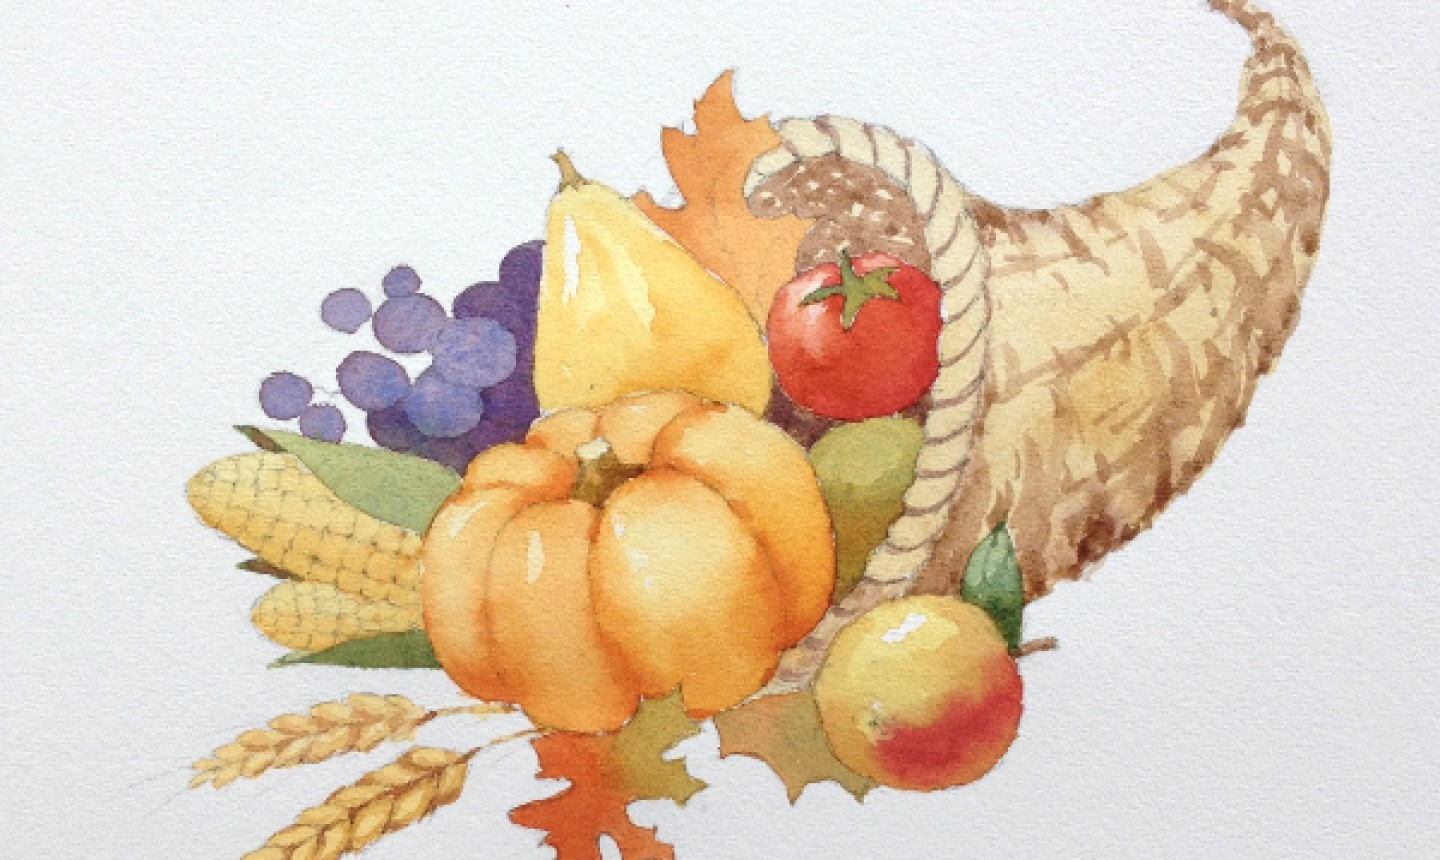 Additional paint on cornucopia sketch